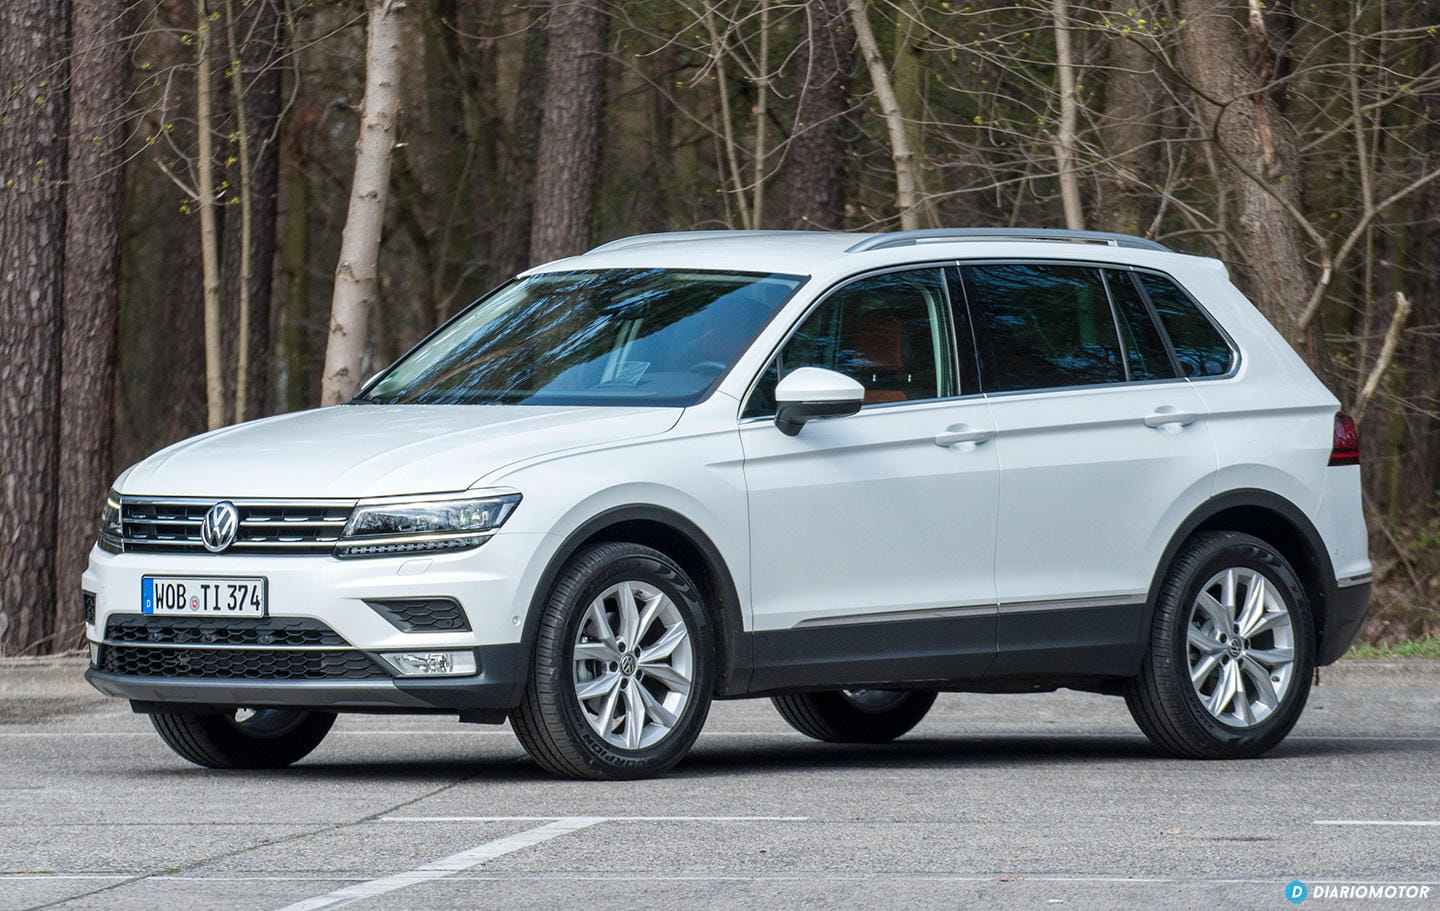 prueba del volkswagen tiguan 2016 un suv en los tiempos. Black Bedroom Furniture Sets. Home Design Ideas